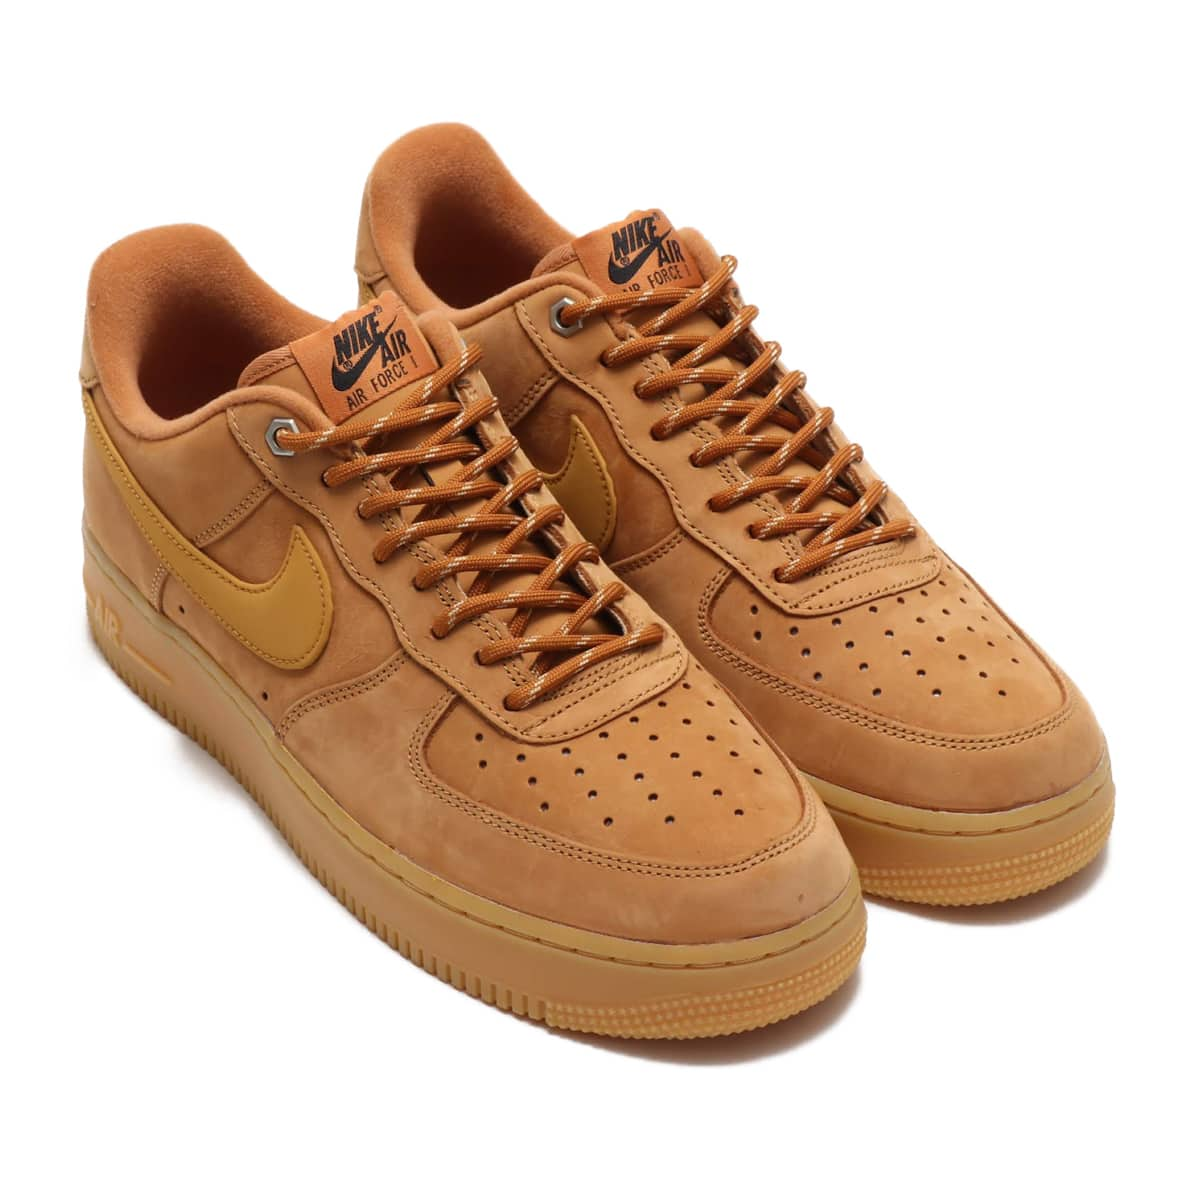 NIKE AIR FORCE 1 '07 WB FLAX/WHEAT-GUM LIGHT BROWN-BLACK 19HO-S_photo_large